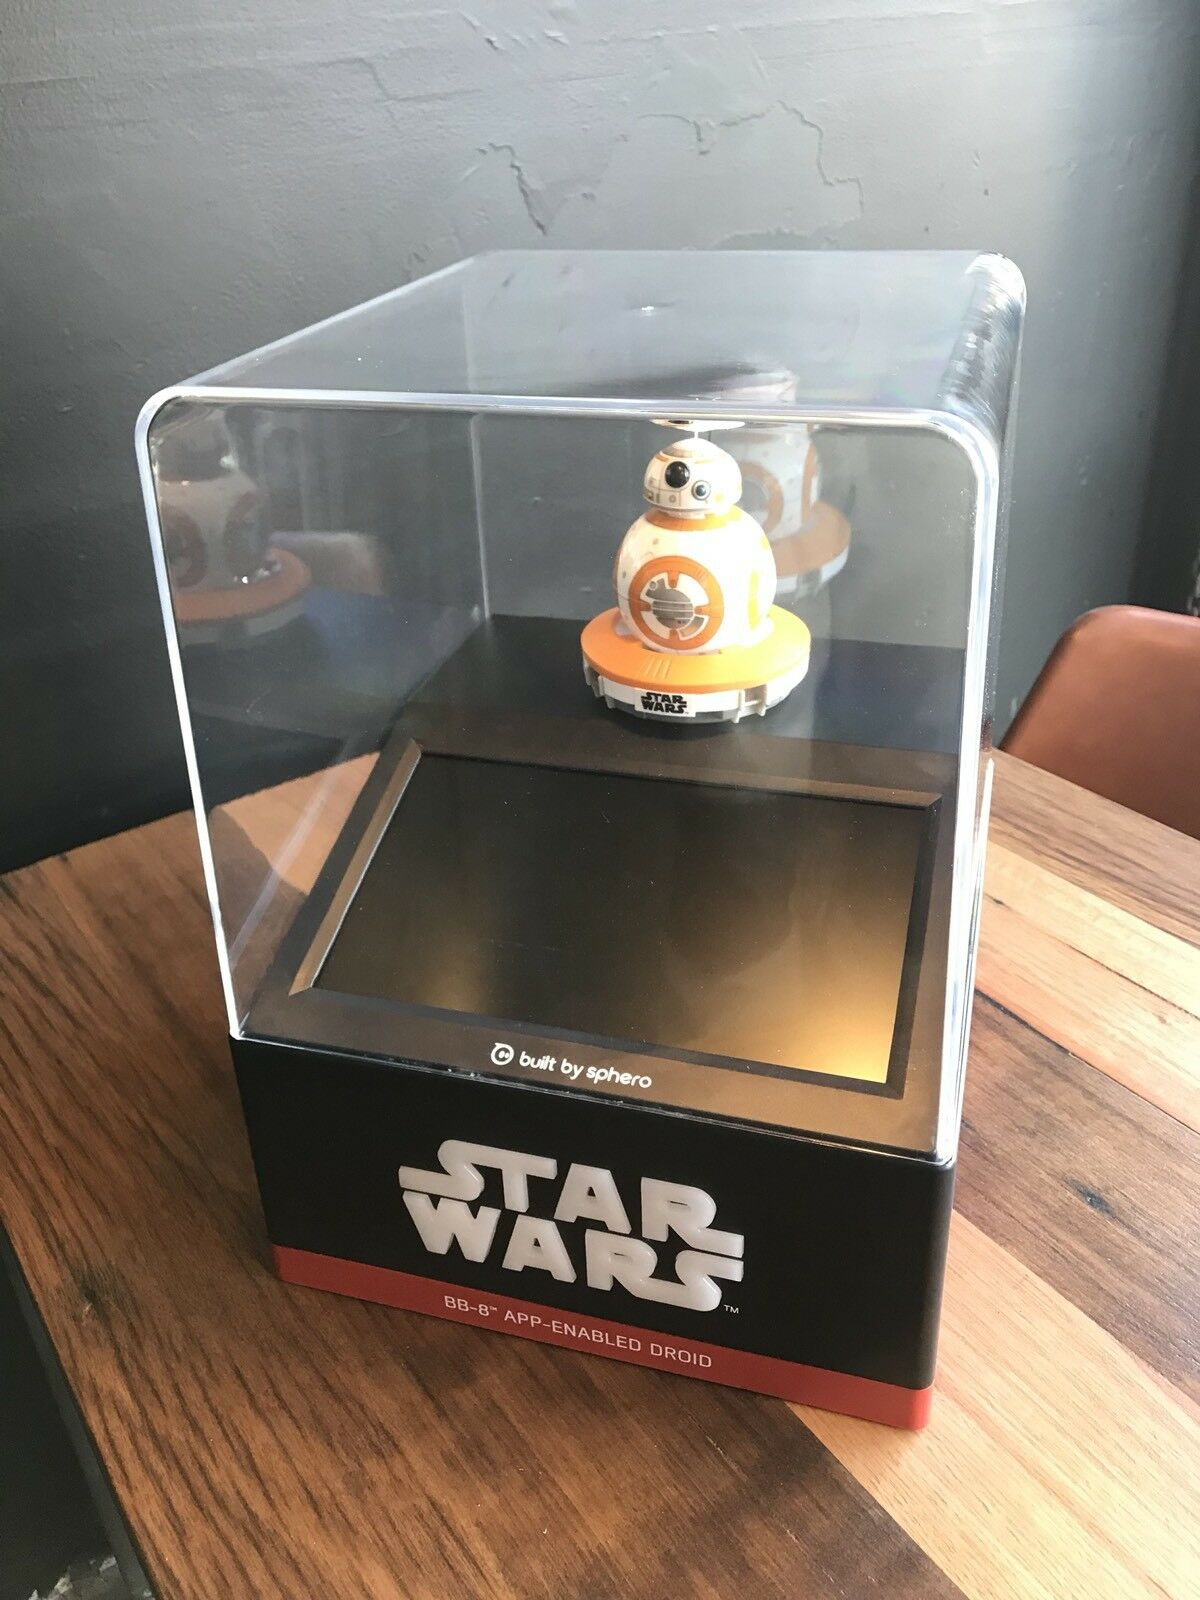 Sphero Star Wars Bb8 Shop Display Brand Nuovo In Box.